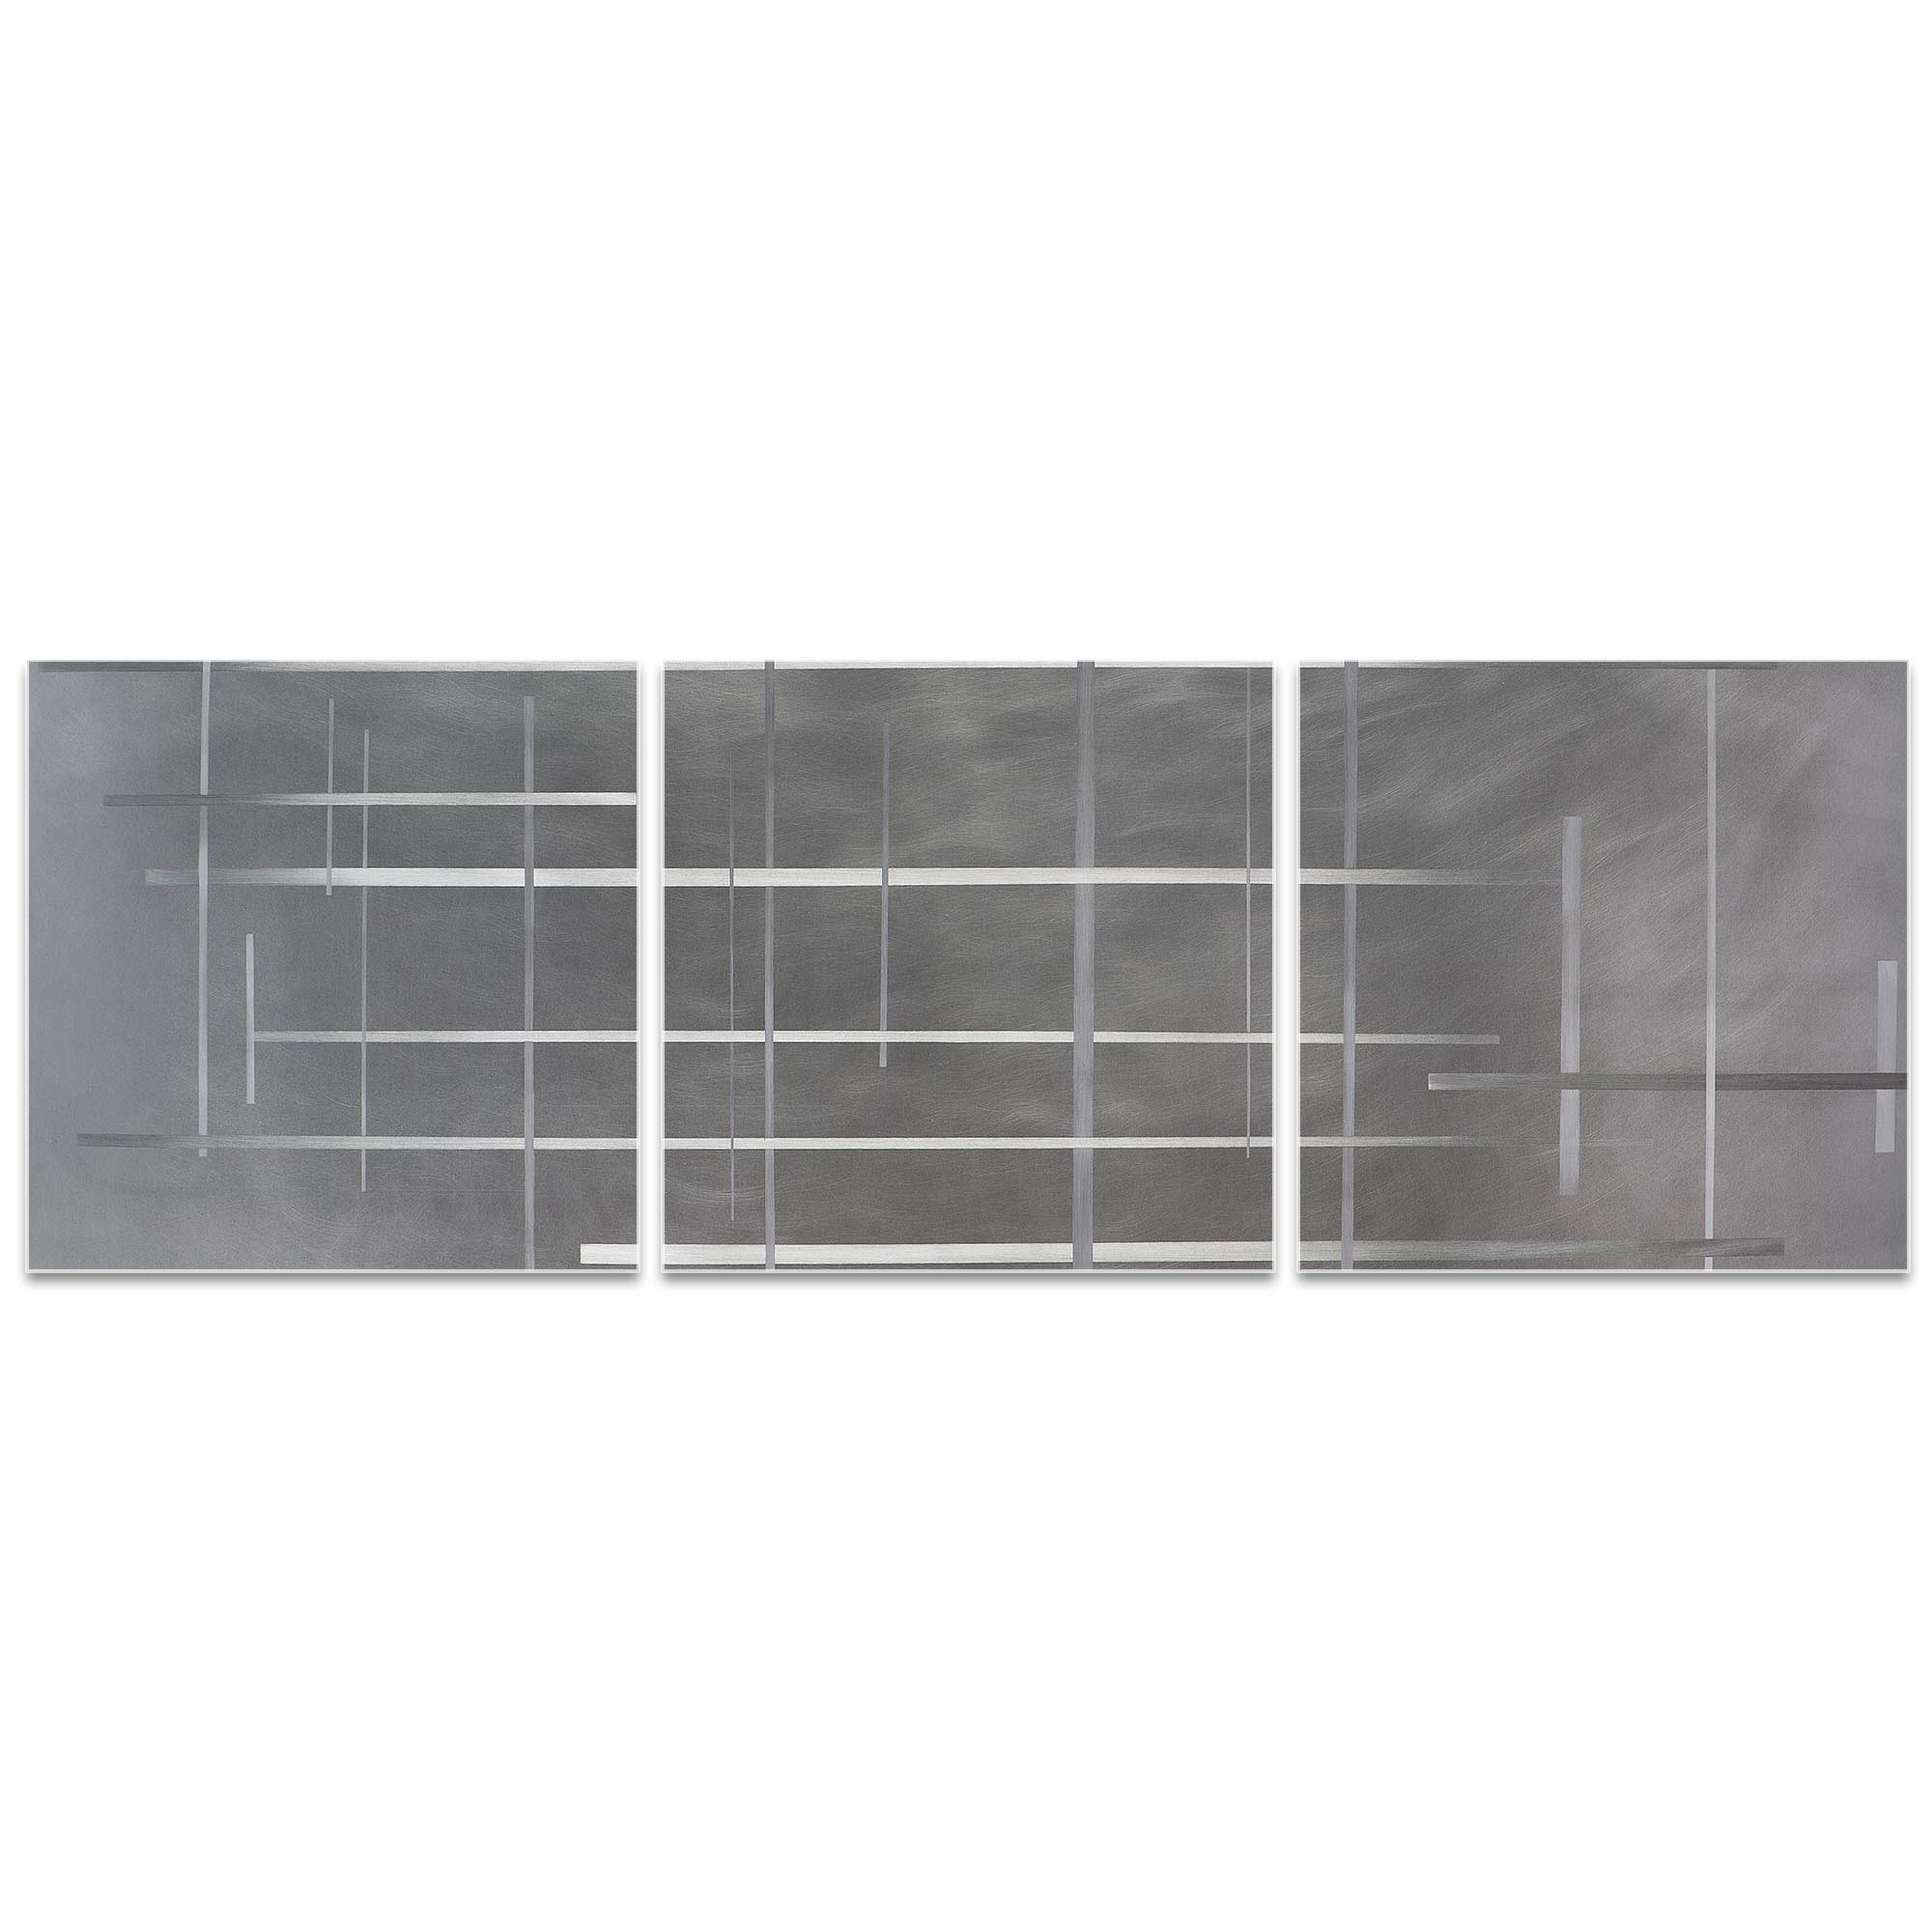 Lattice Triptych 38x12in. Metal or Acrylic Minimalistic Decor - Image 2